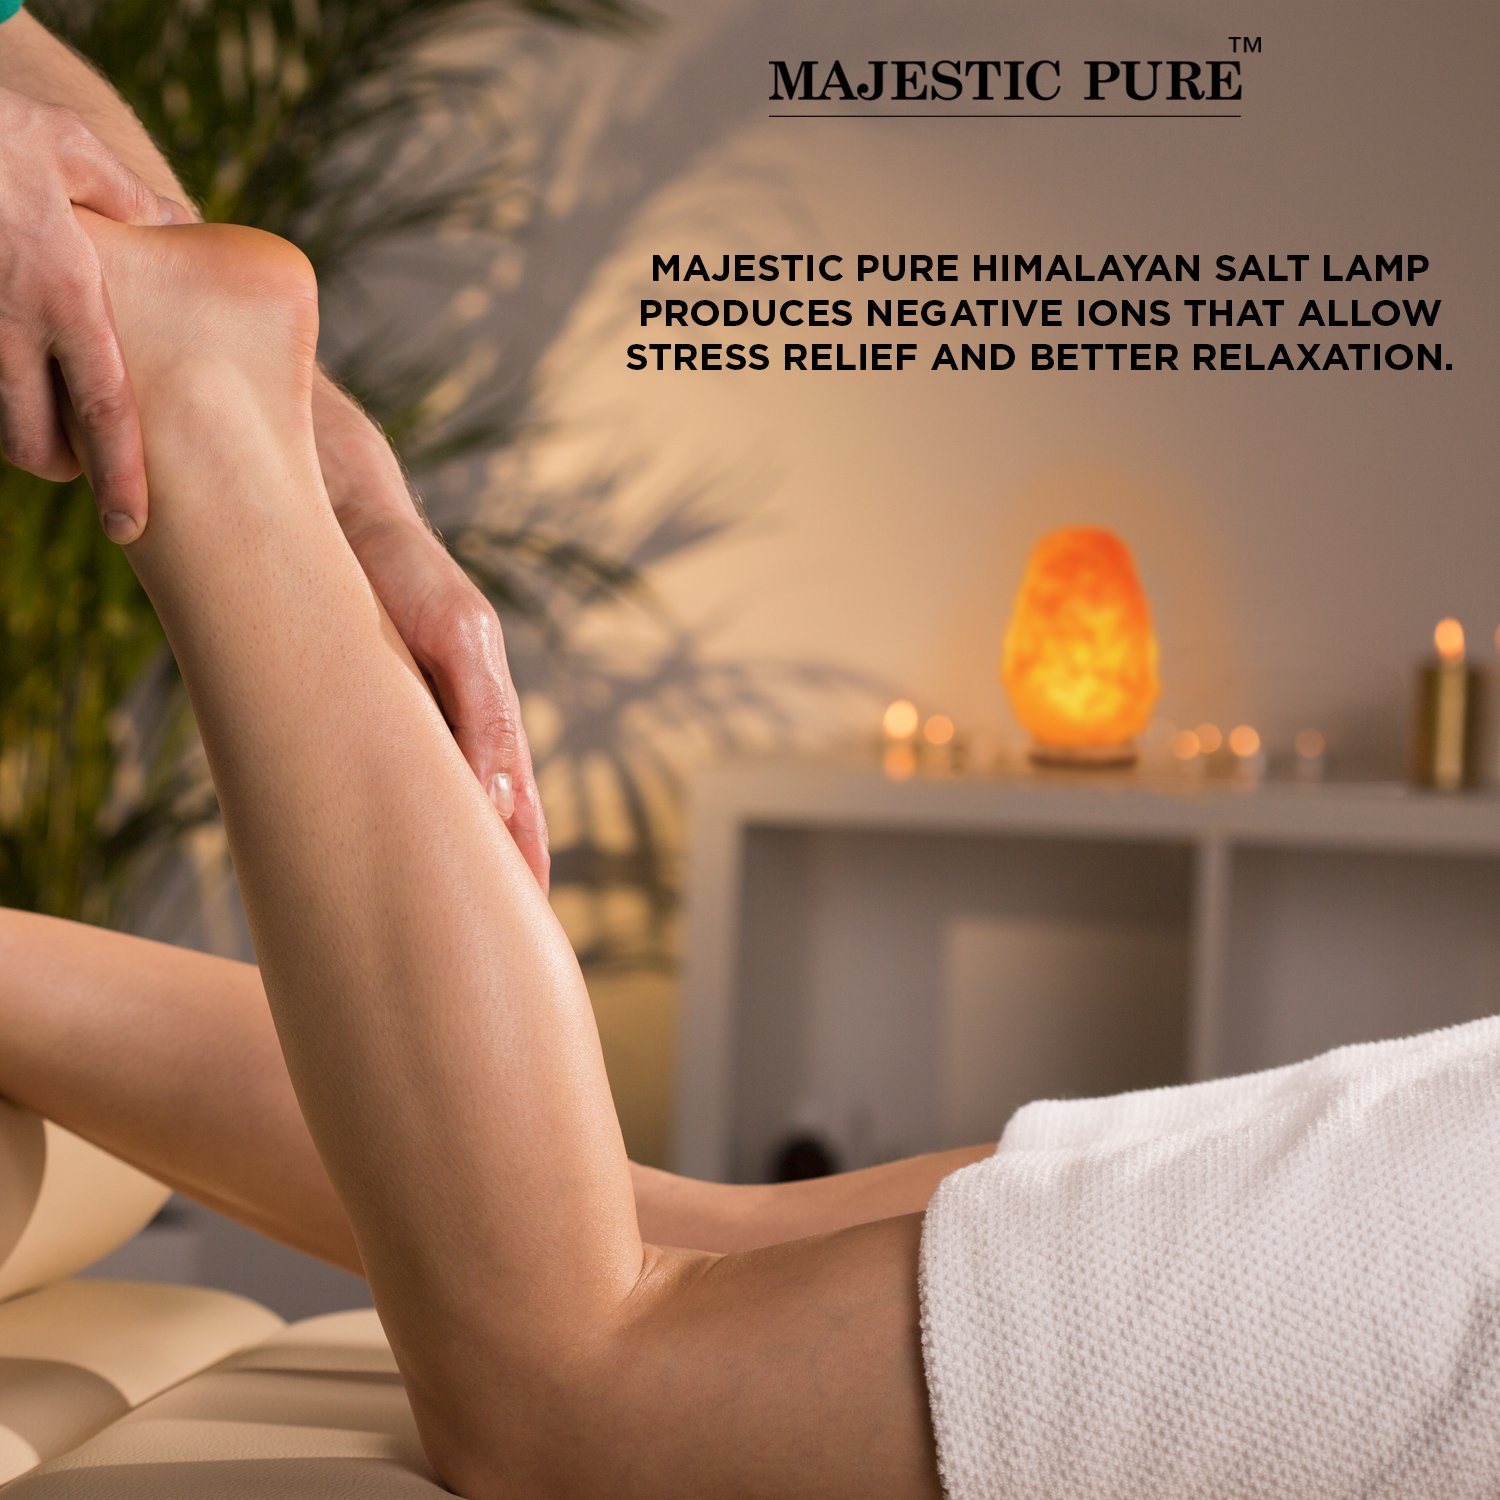 Majestic Pure Himalayan Salt Lamp - Natural Pink Salt Rock Lamp, Hand Carved, Wooden Base, Brightness Dimmer, 3 Bulbs, UL-Listed Cord and Gift Box, 8-11 lbs by Majestic Pure (Image #4)